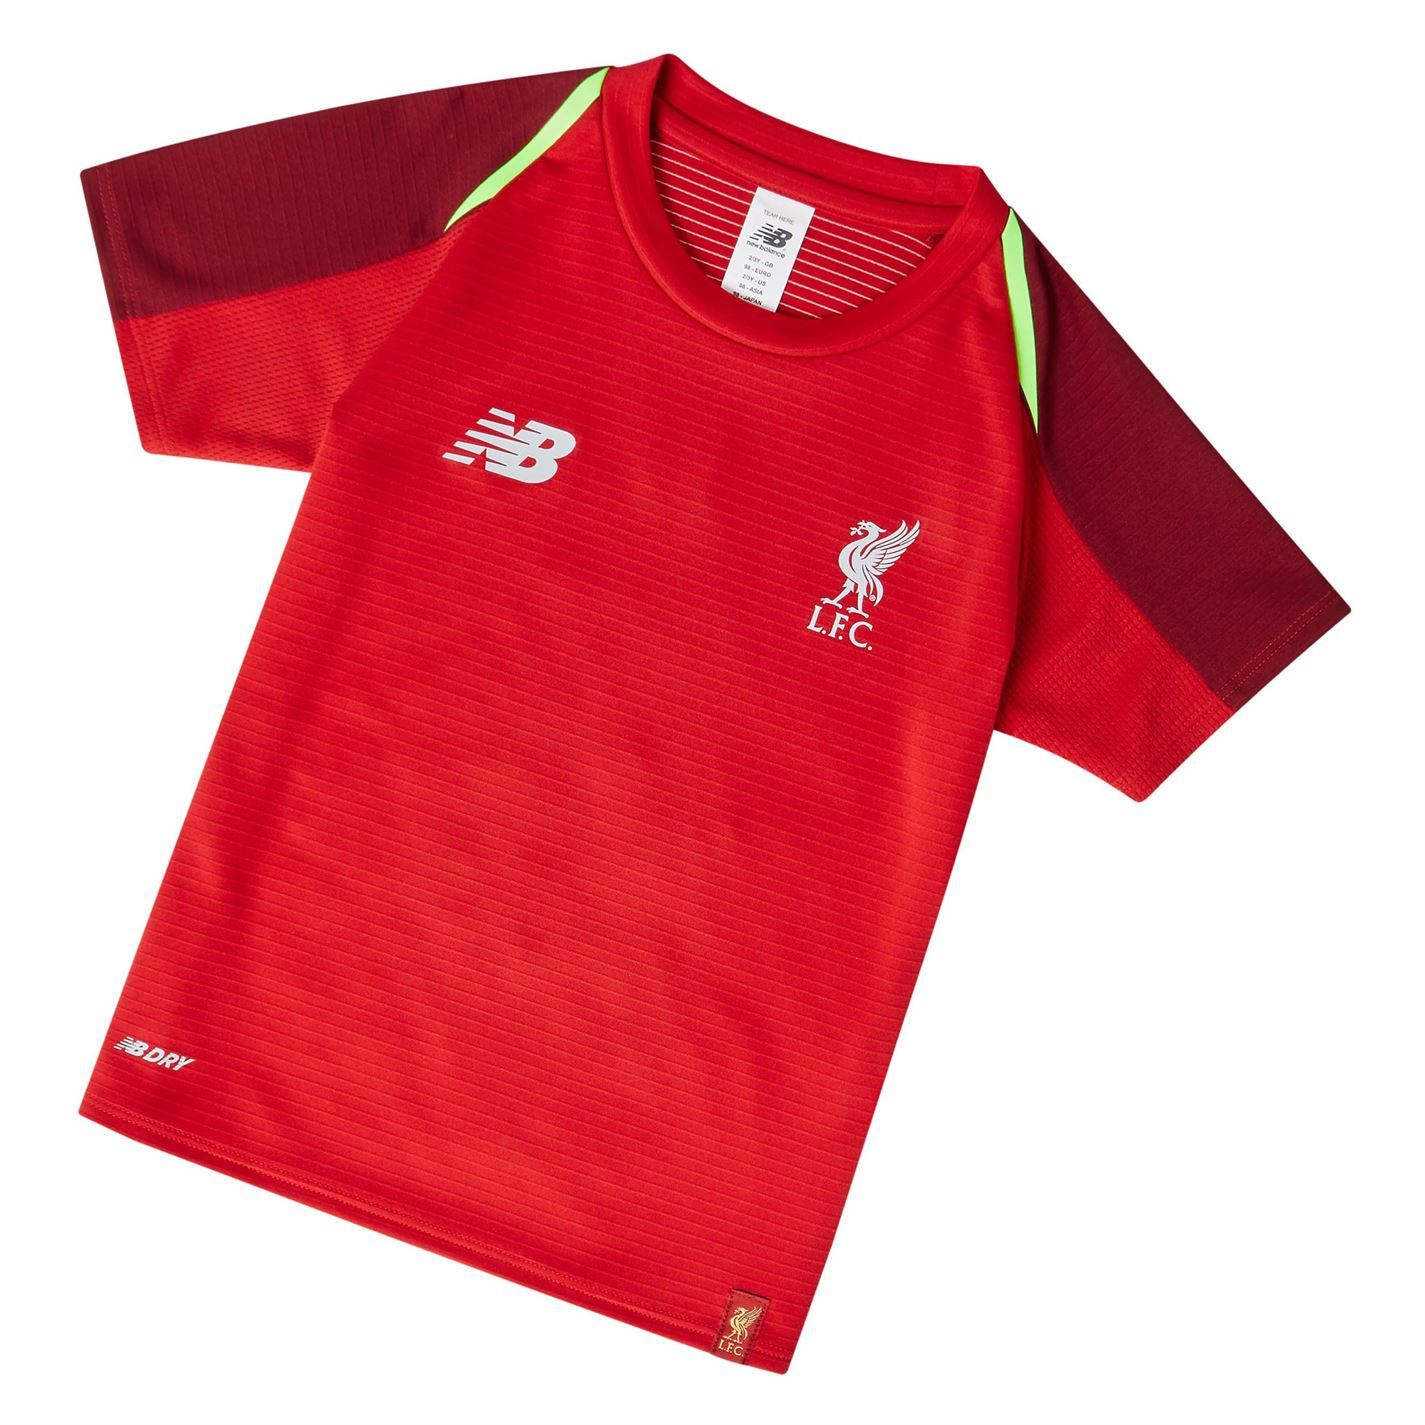 ... New Balance Liverpool Training Jersey 2018-19 Infants Red Football  Soccer Shirt ... 19abc8658